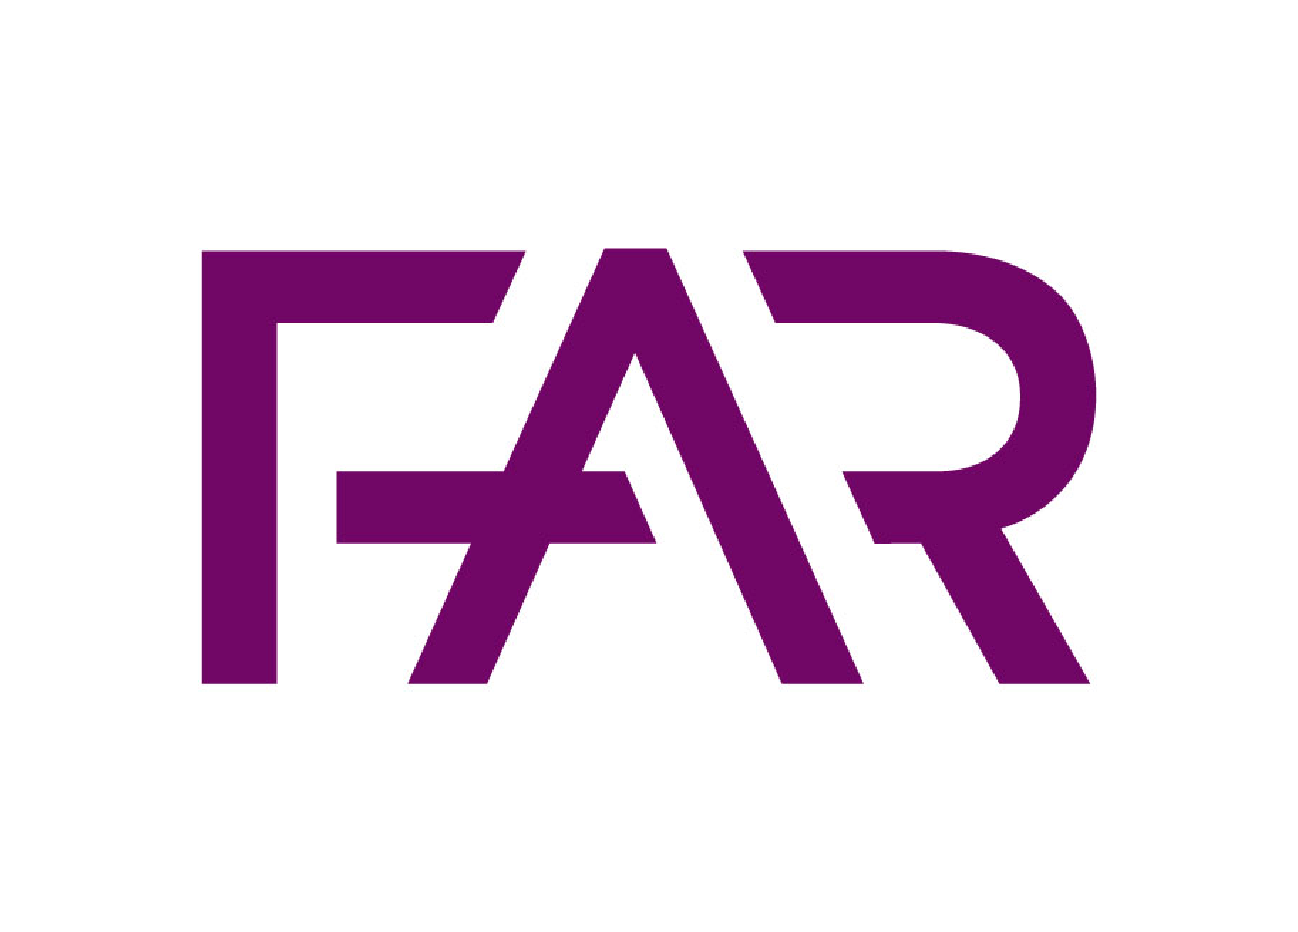 FAR logotyp